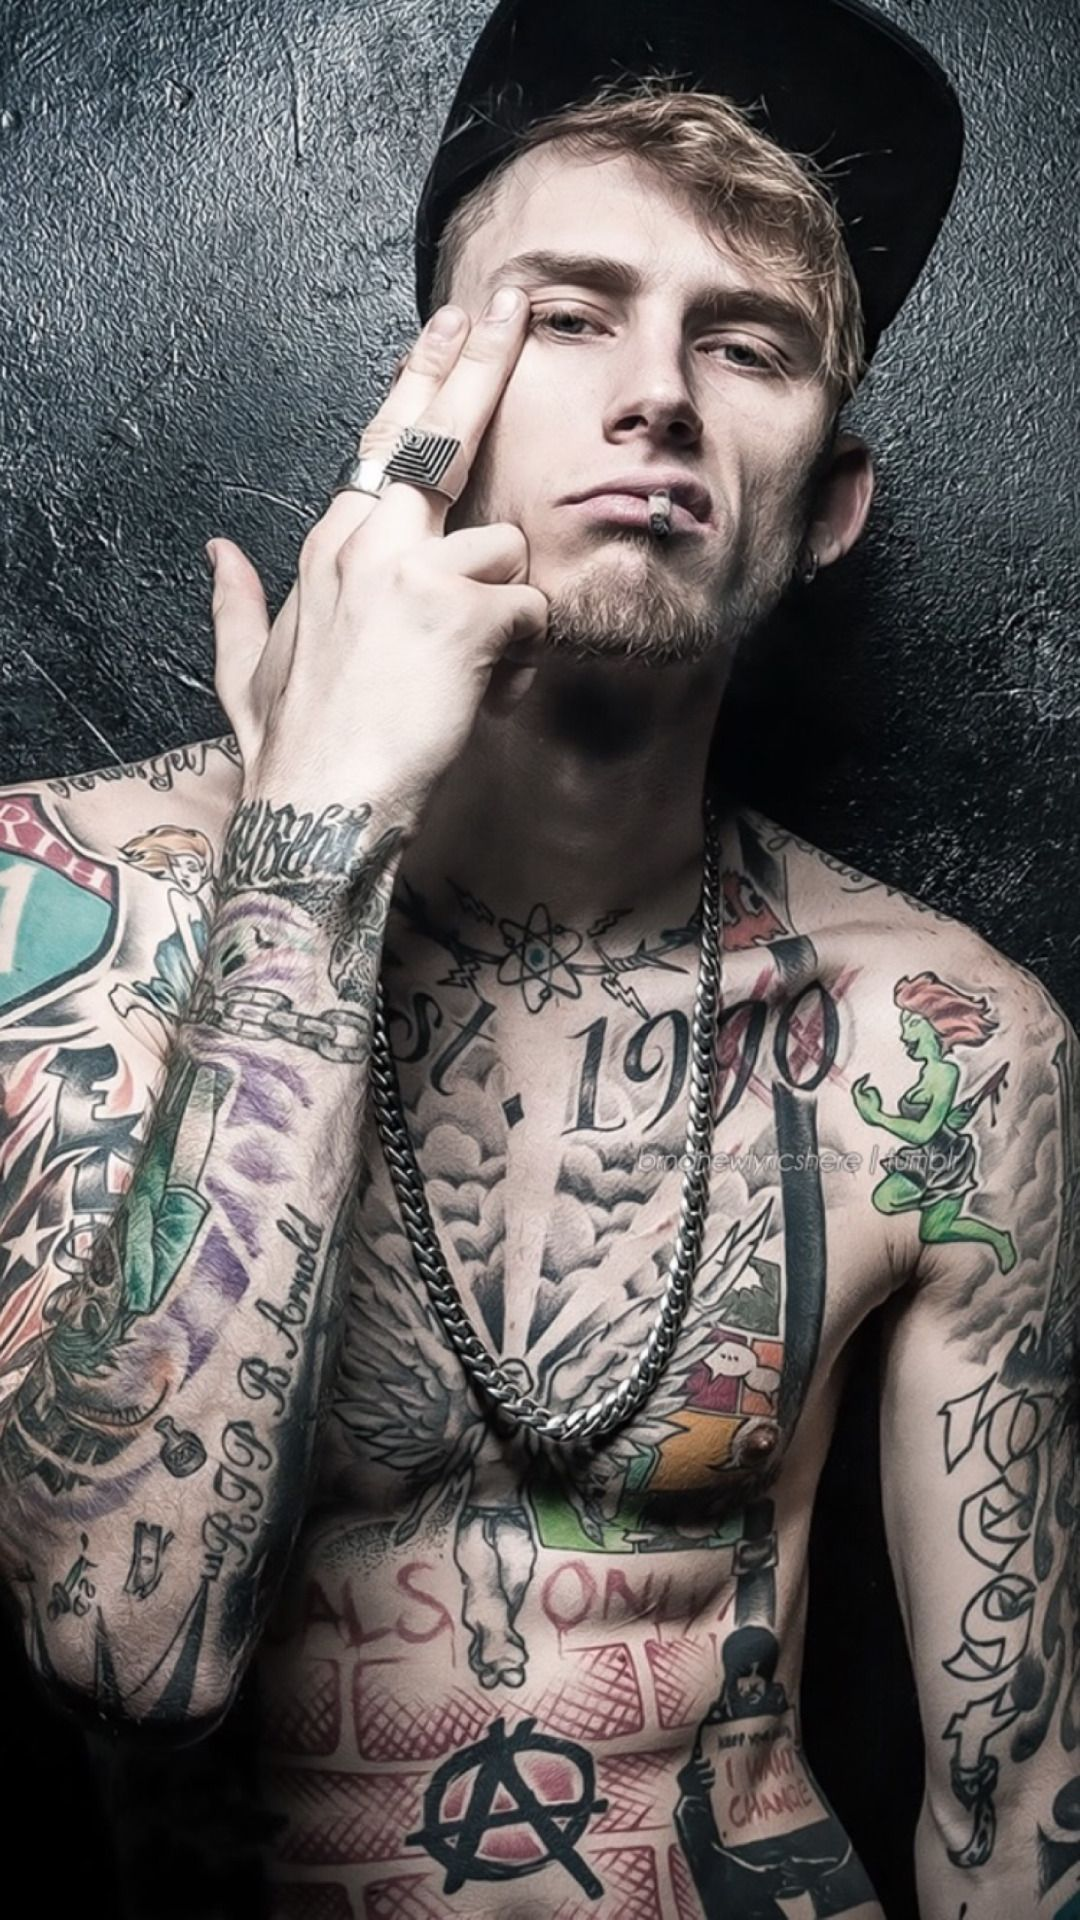 pin by teanna royer on mgk in 2018 pinterest machine gun kelly